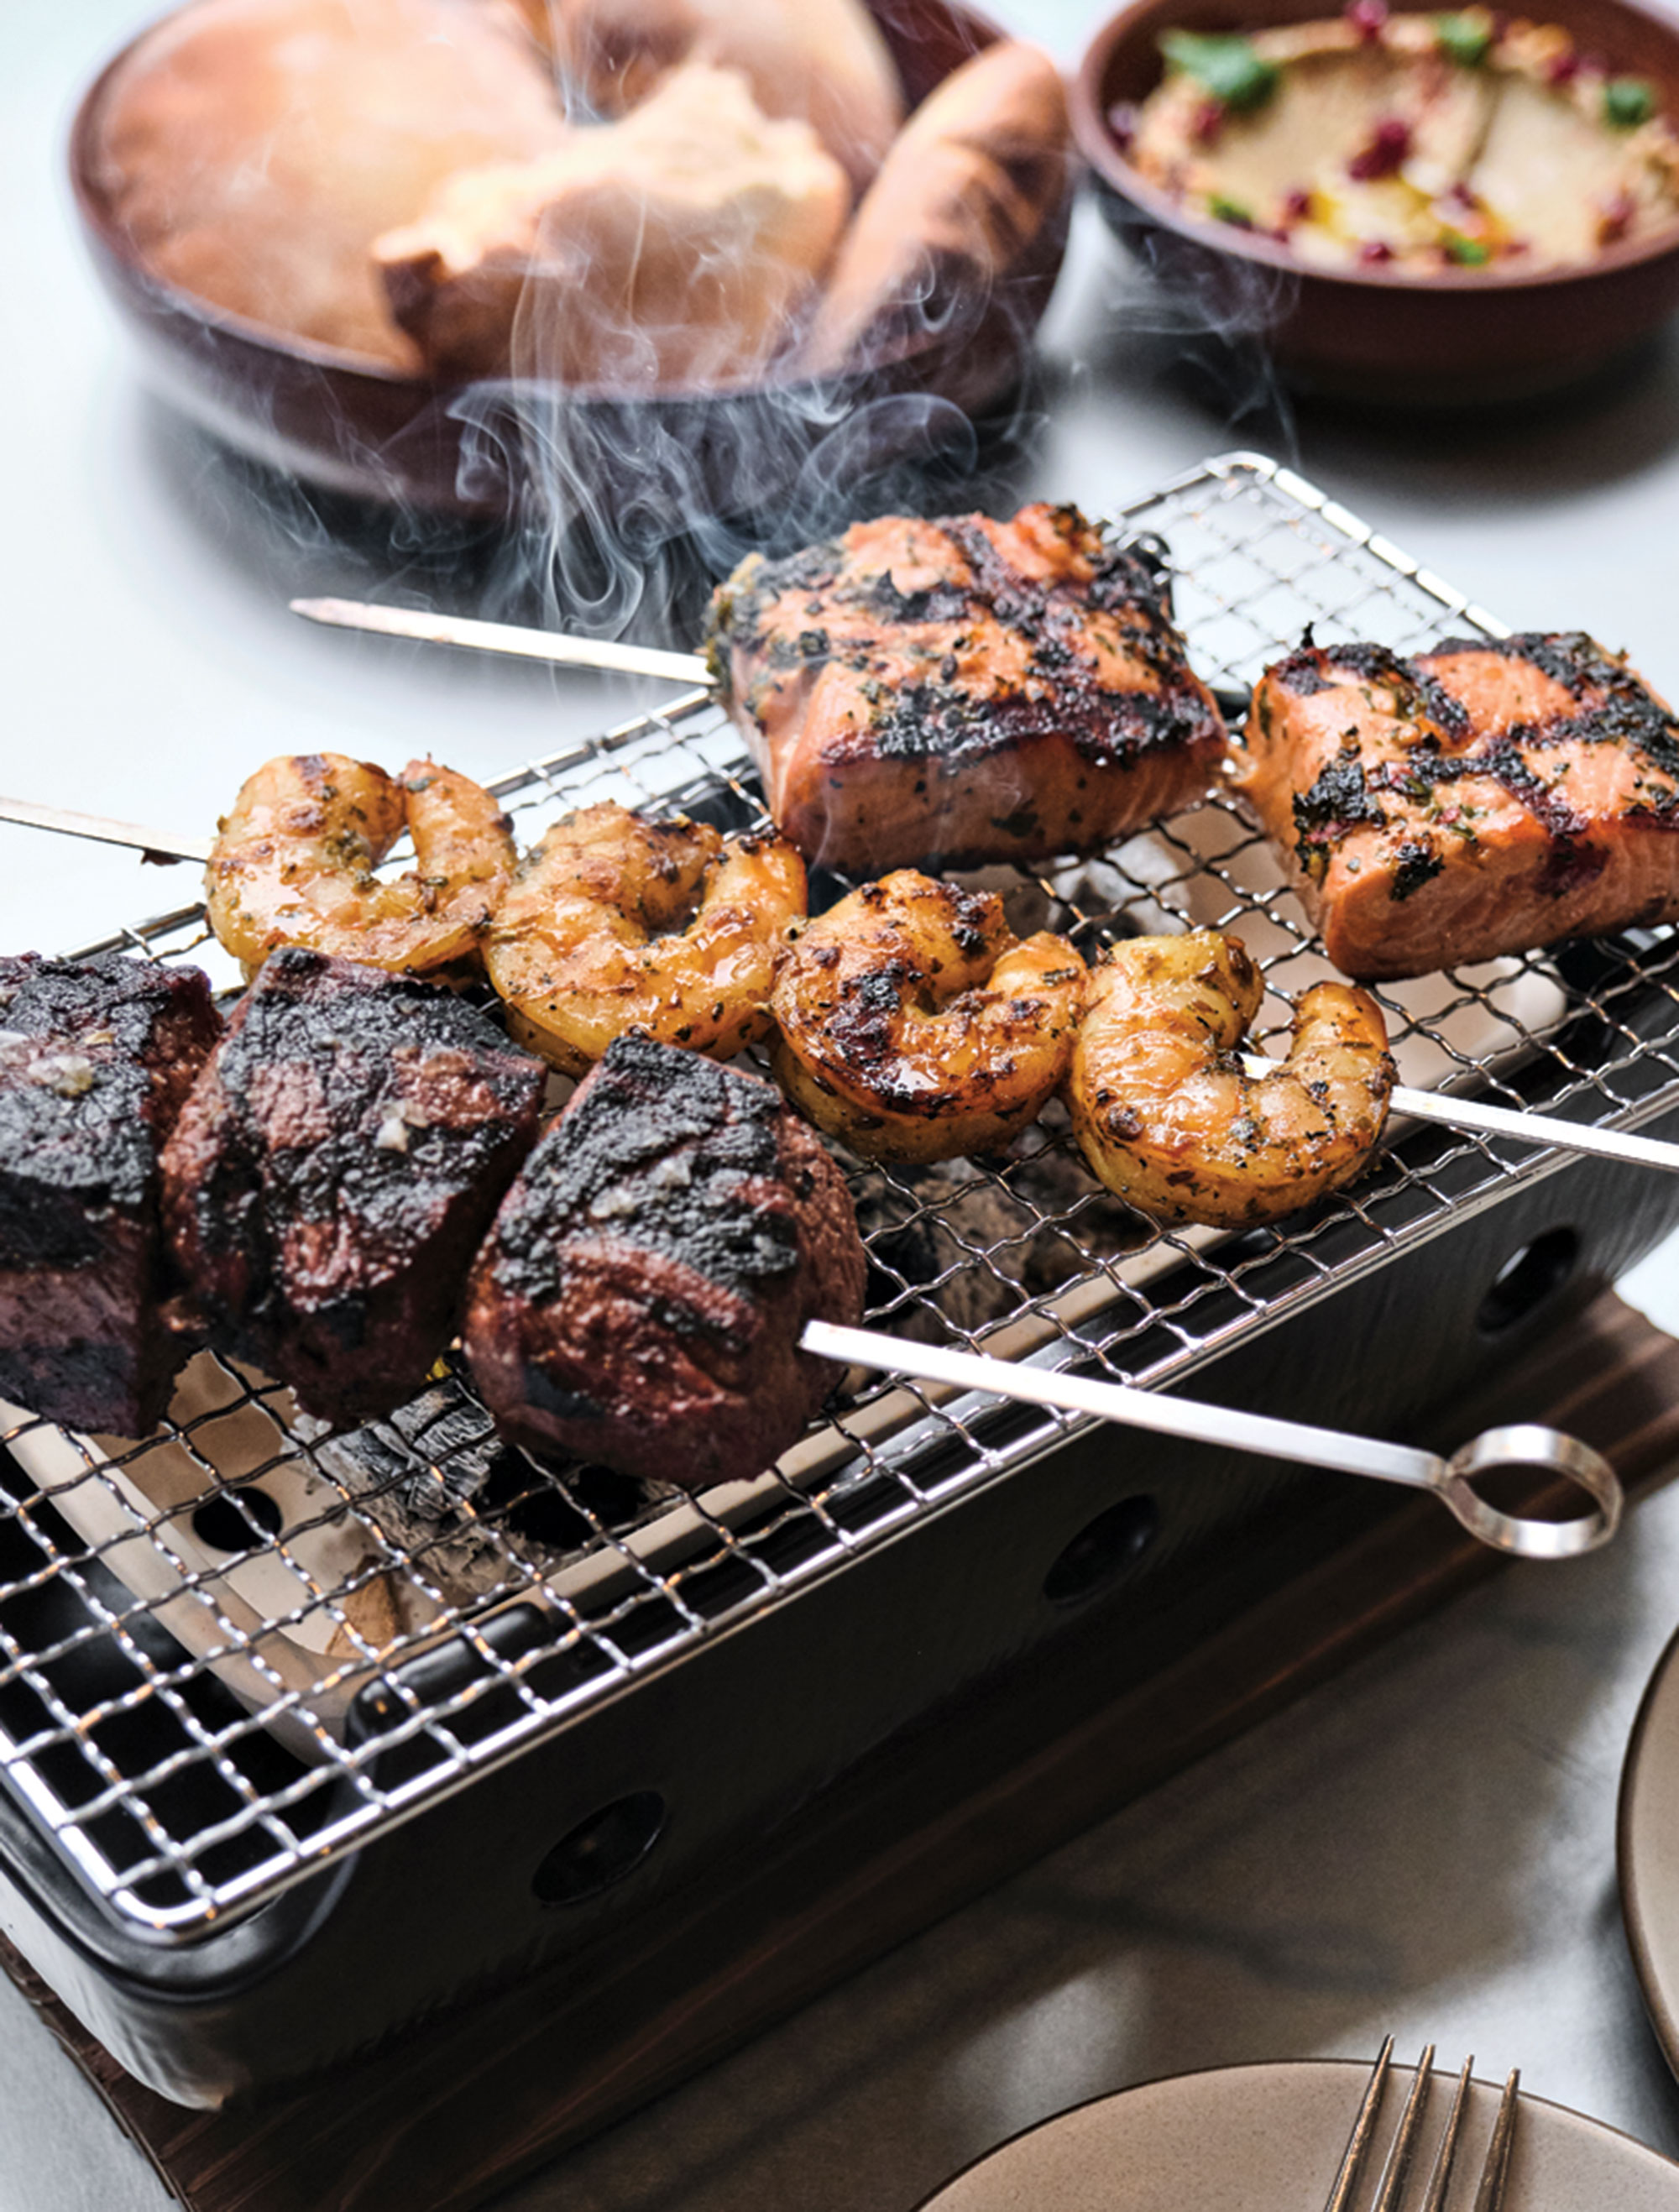 wood-grilled kebabs; Photography by Kyle Ledeboer